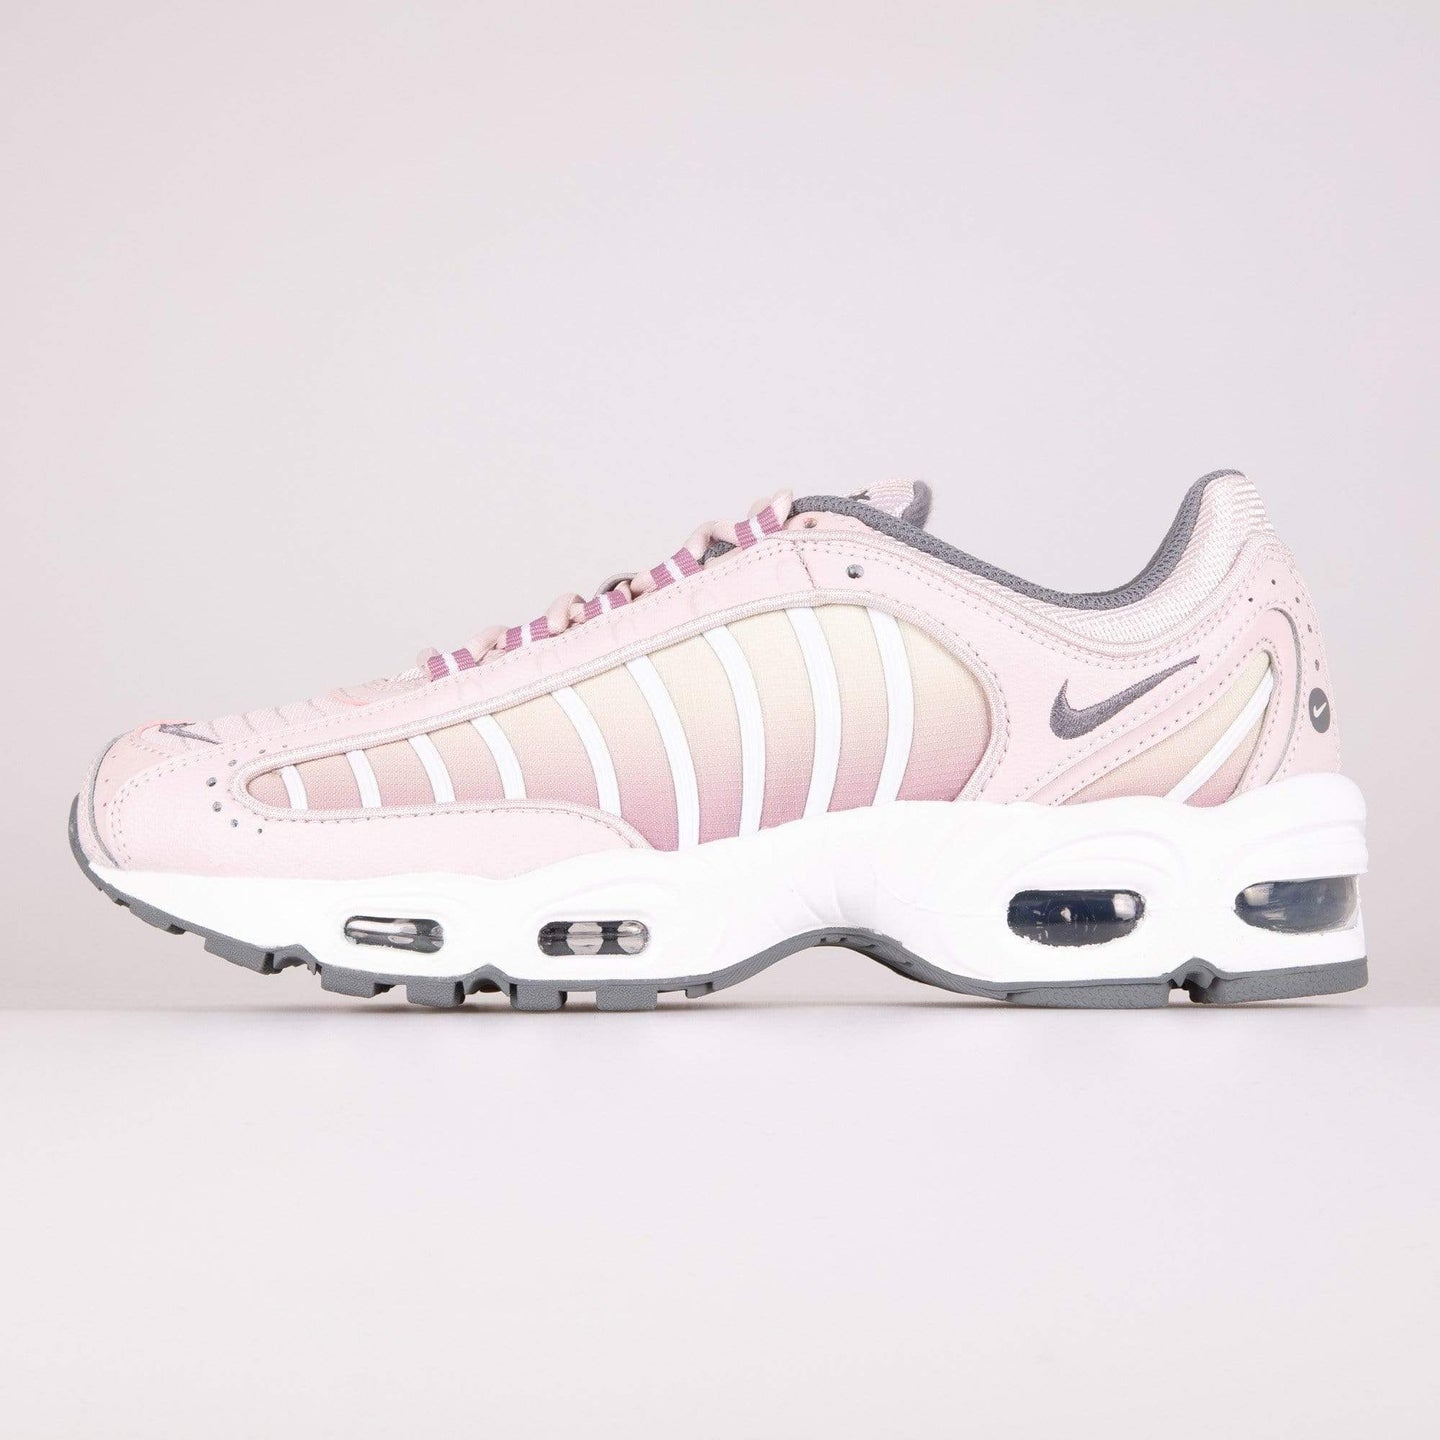 Nike Wmns Air Max Tailwind IV - Barely Rose / Smoke Grey UK 3 CK26006003 193154669411 Nike Trainers